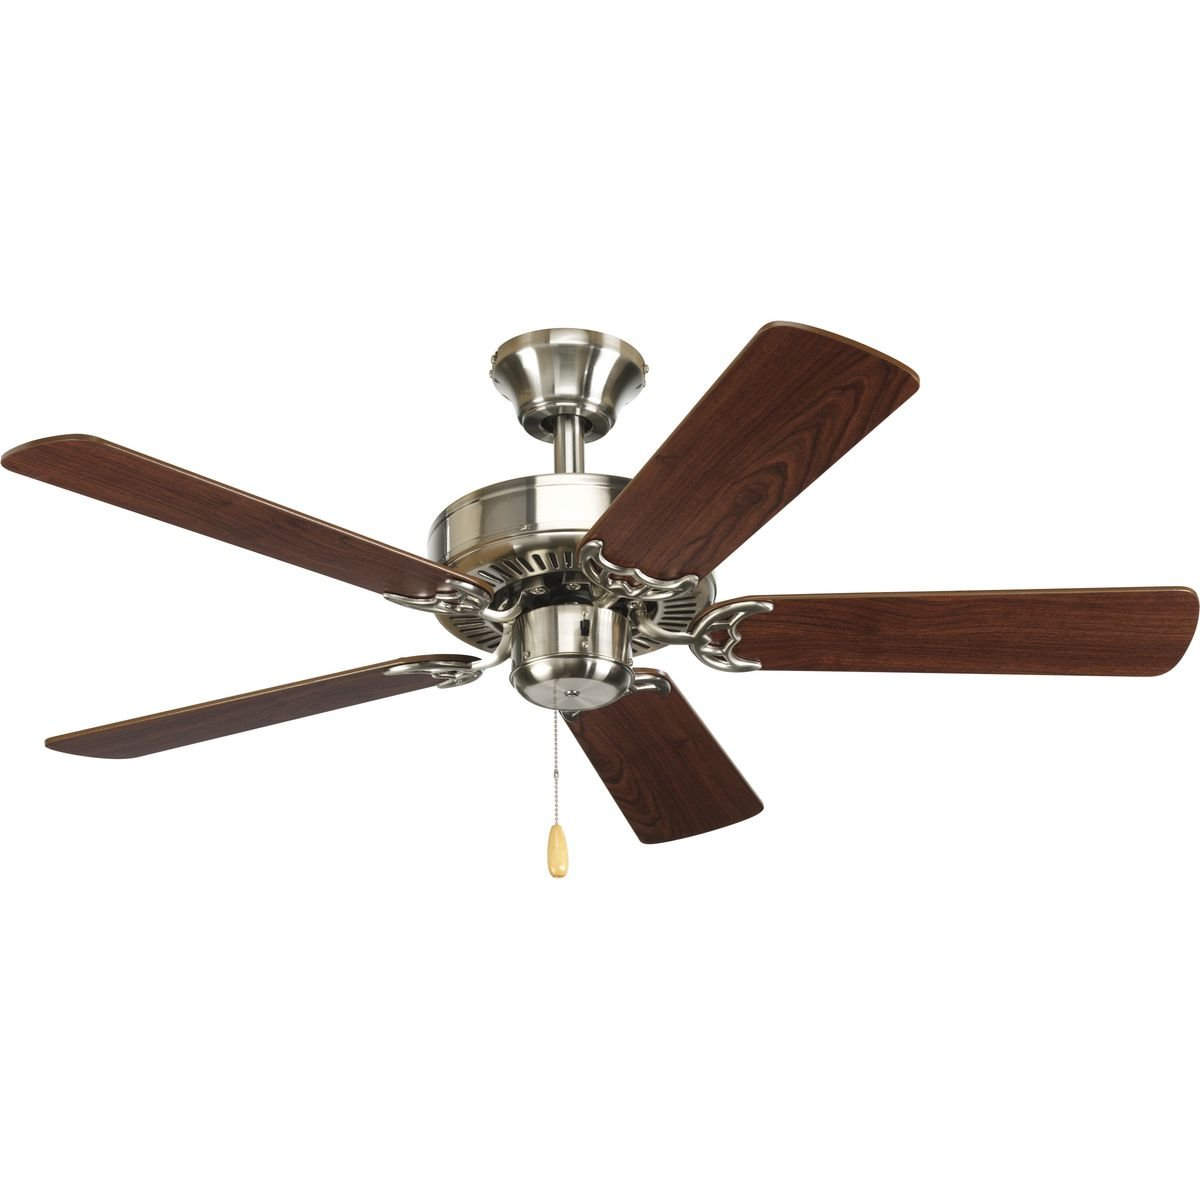 Progress Lighting P2500-09 42-Inch Fan with 5 Blades with Reversible Cherry/Natural Cherry Blades, Brushed Nickel by Progress Lighting (Image #2)